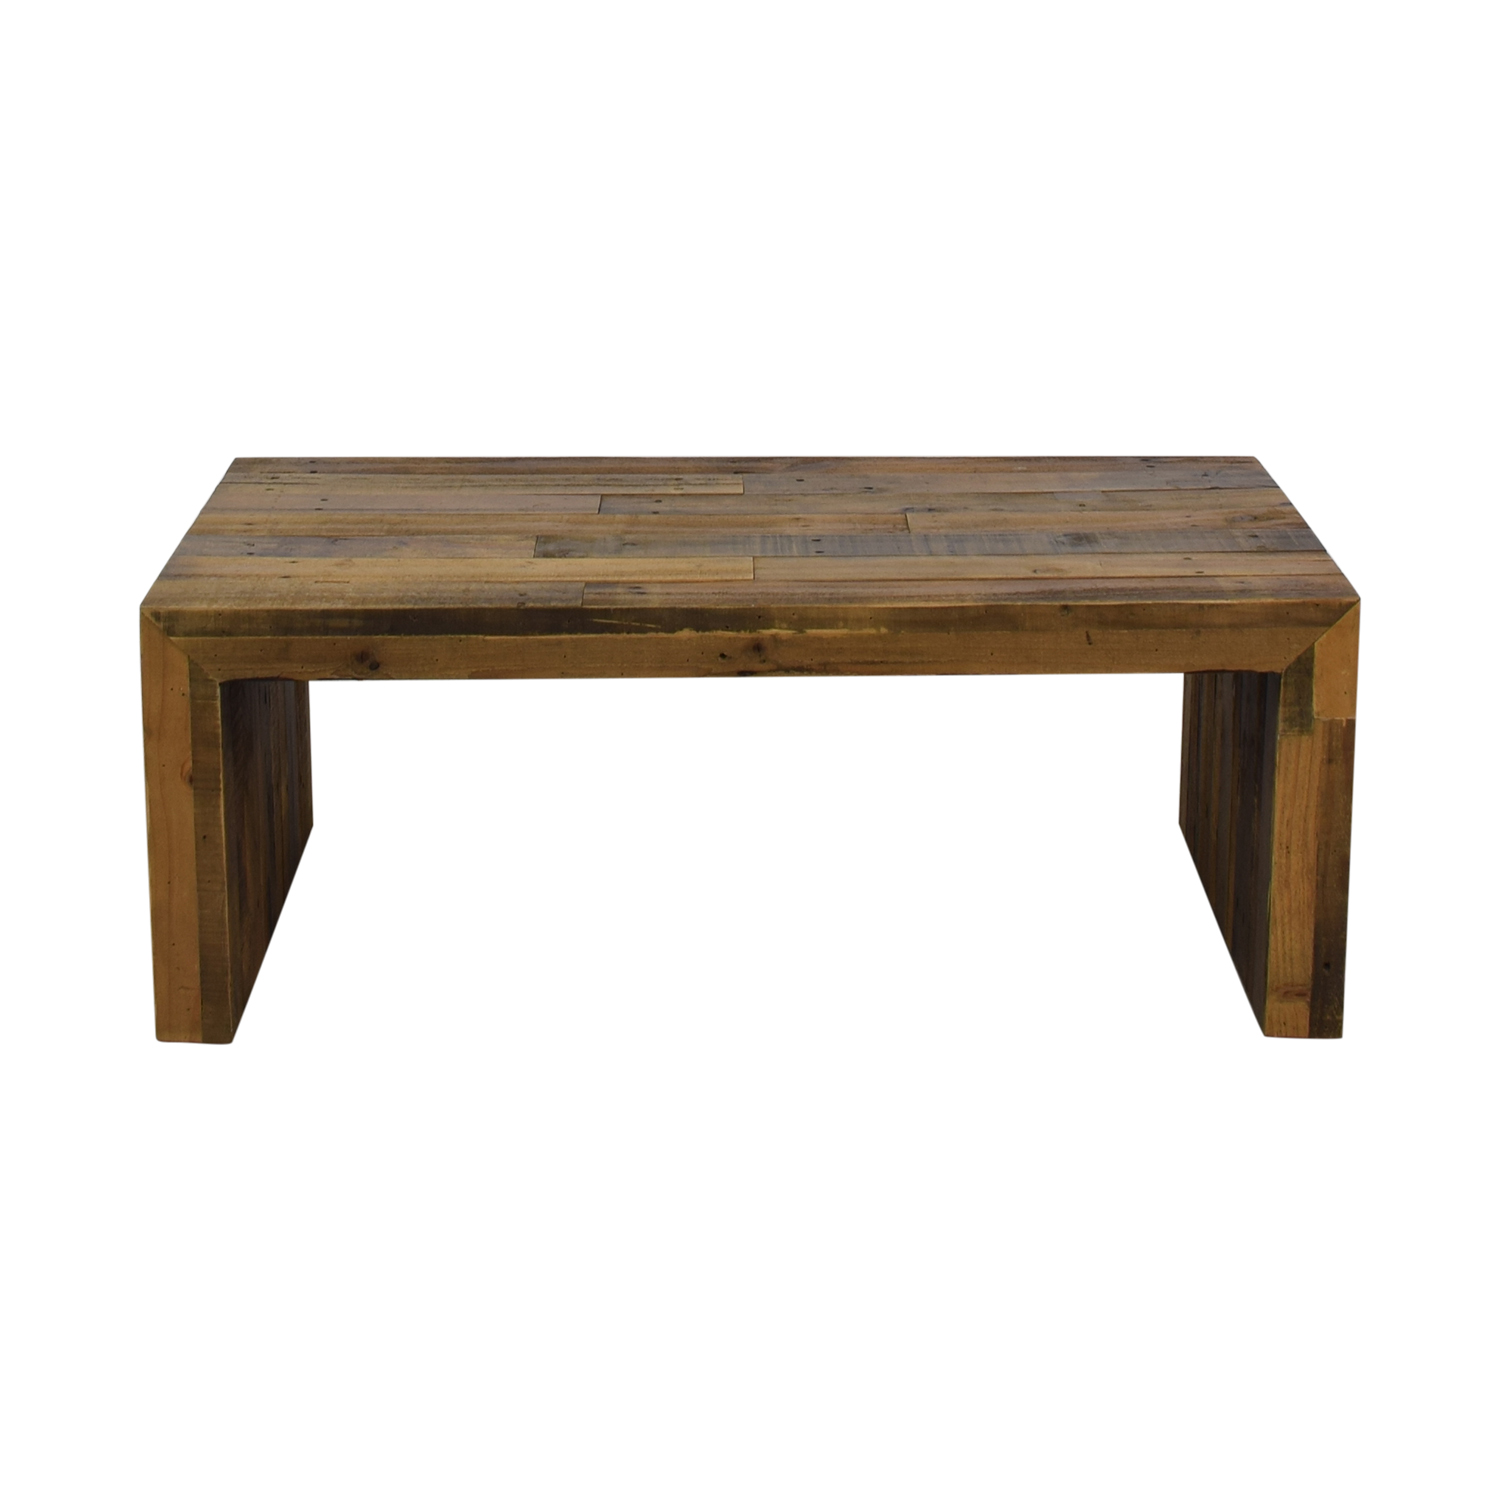 West Elm West Elm Emmerson Reclaimed Wood Coffee Table nyc